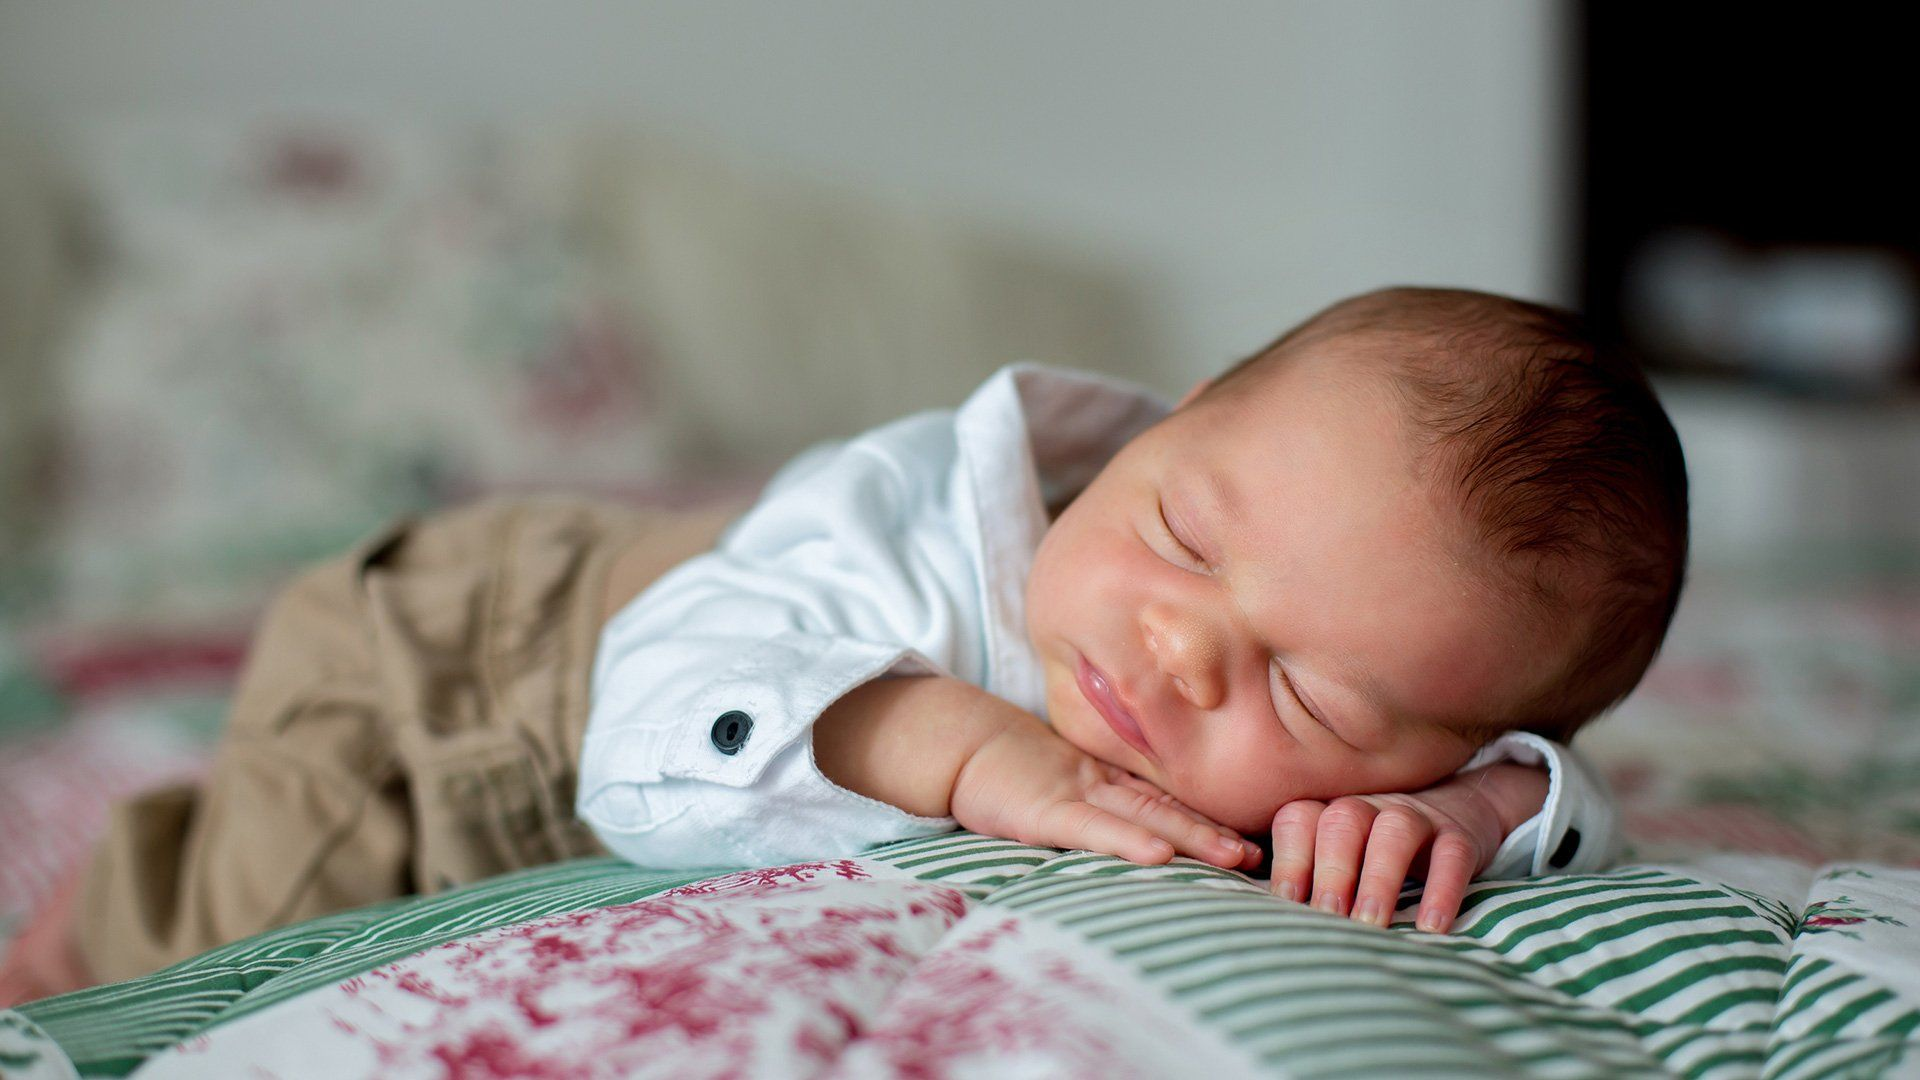 A baby wears a shirt and lies on its front on a green, pink and white blanket.